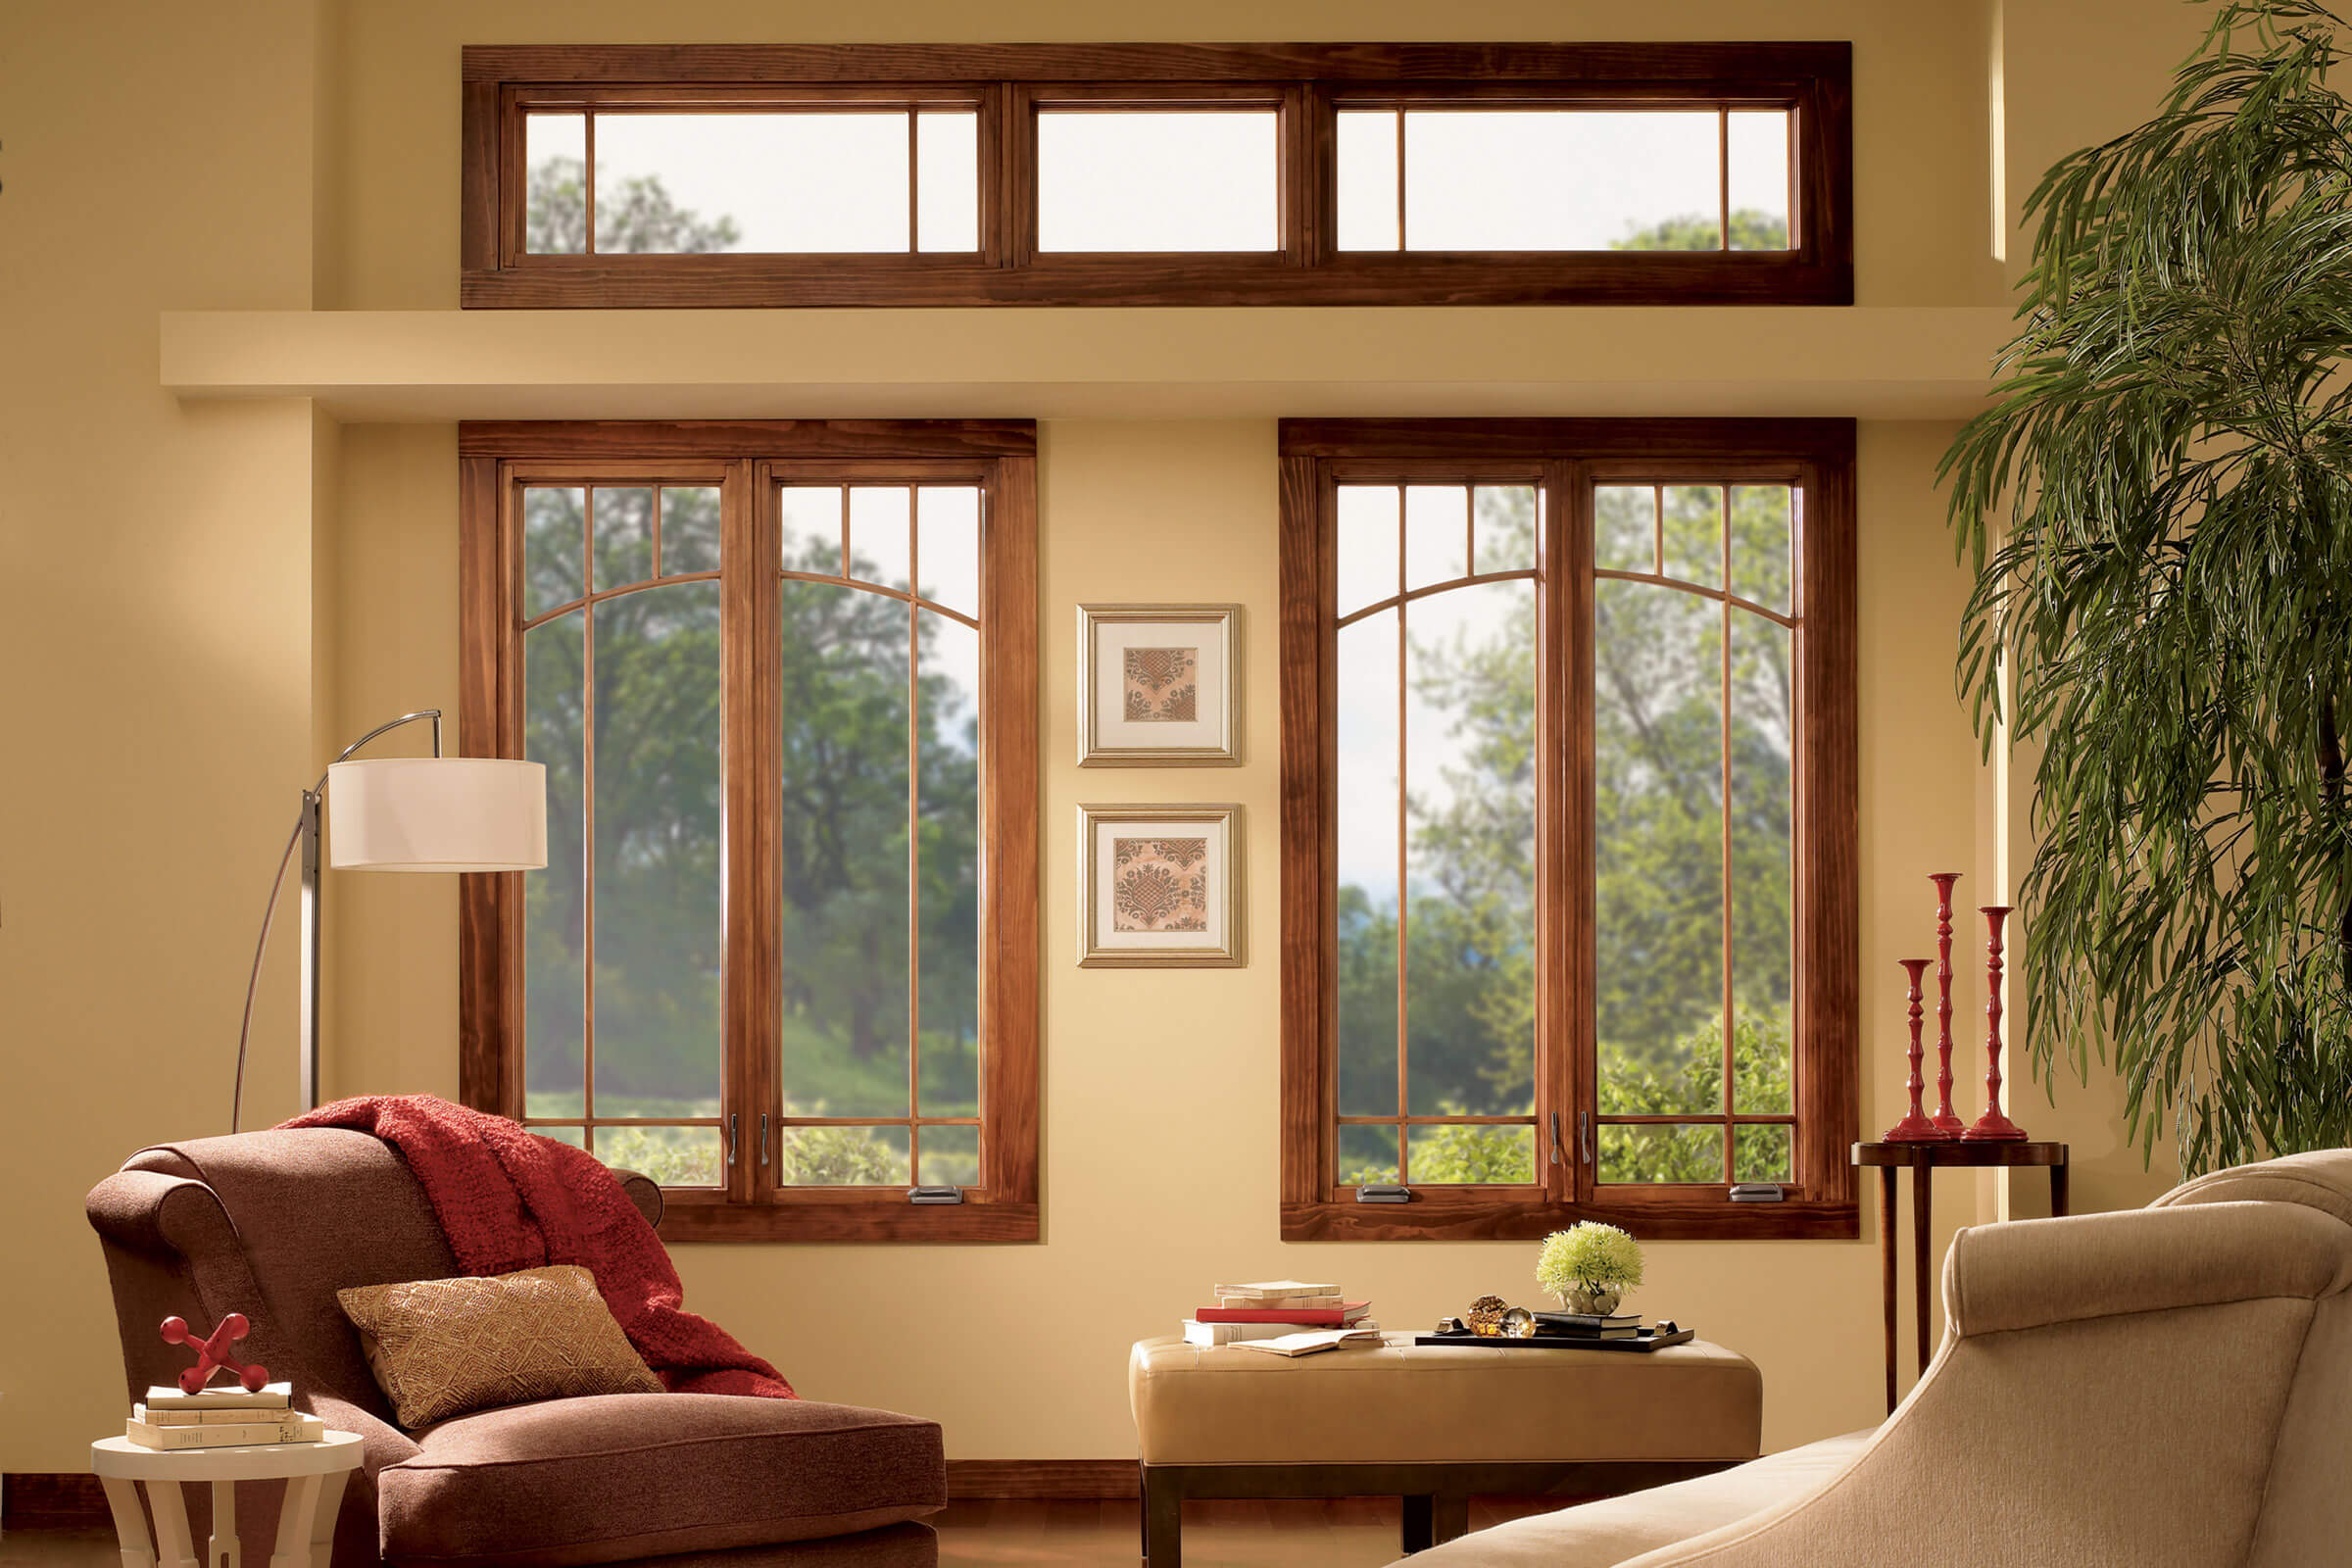 Interior View Of Living Room With Signature Ultimate Casement Narrow Windows